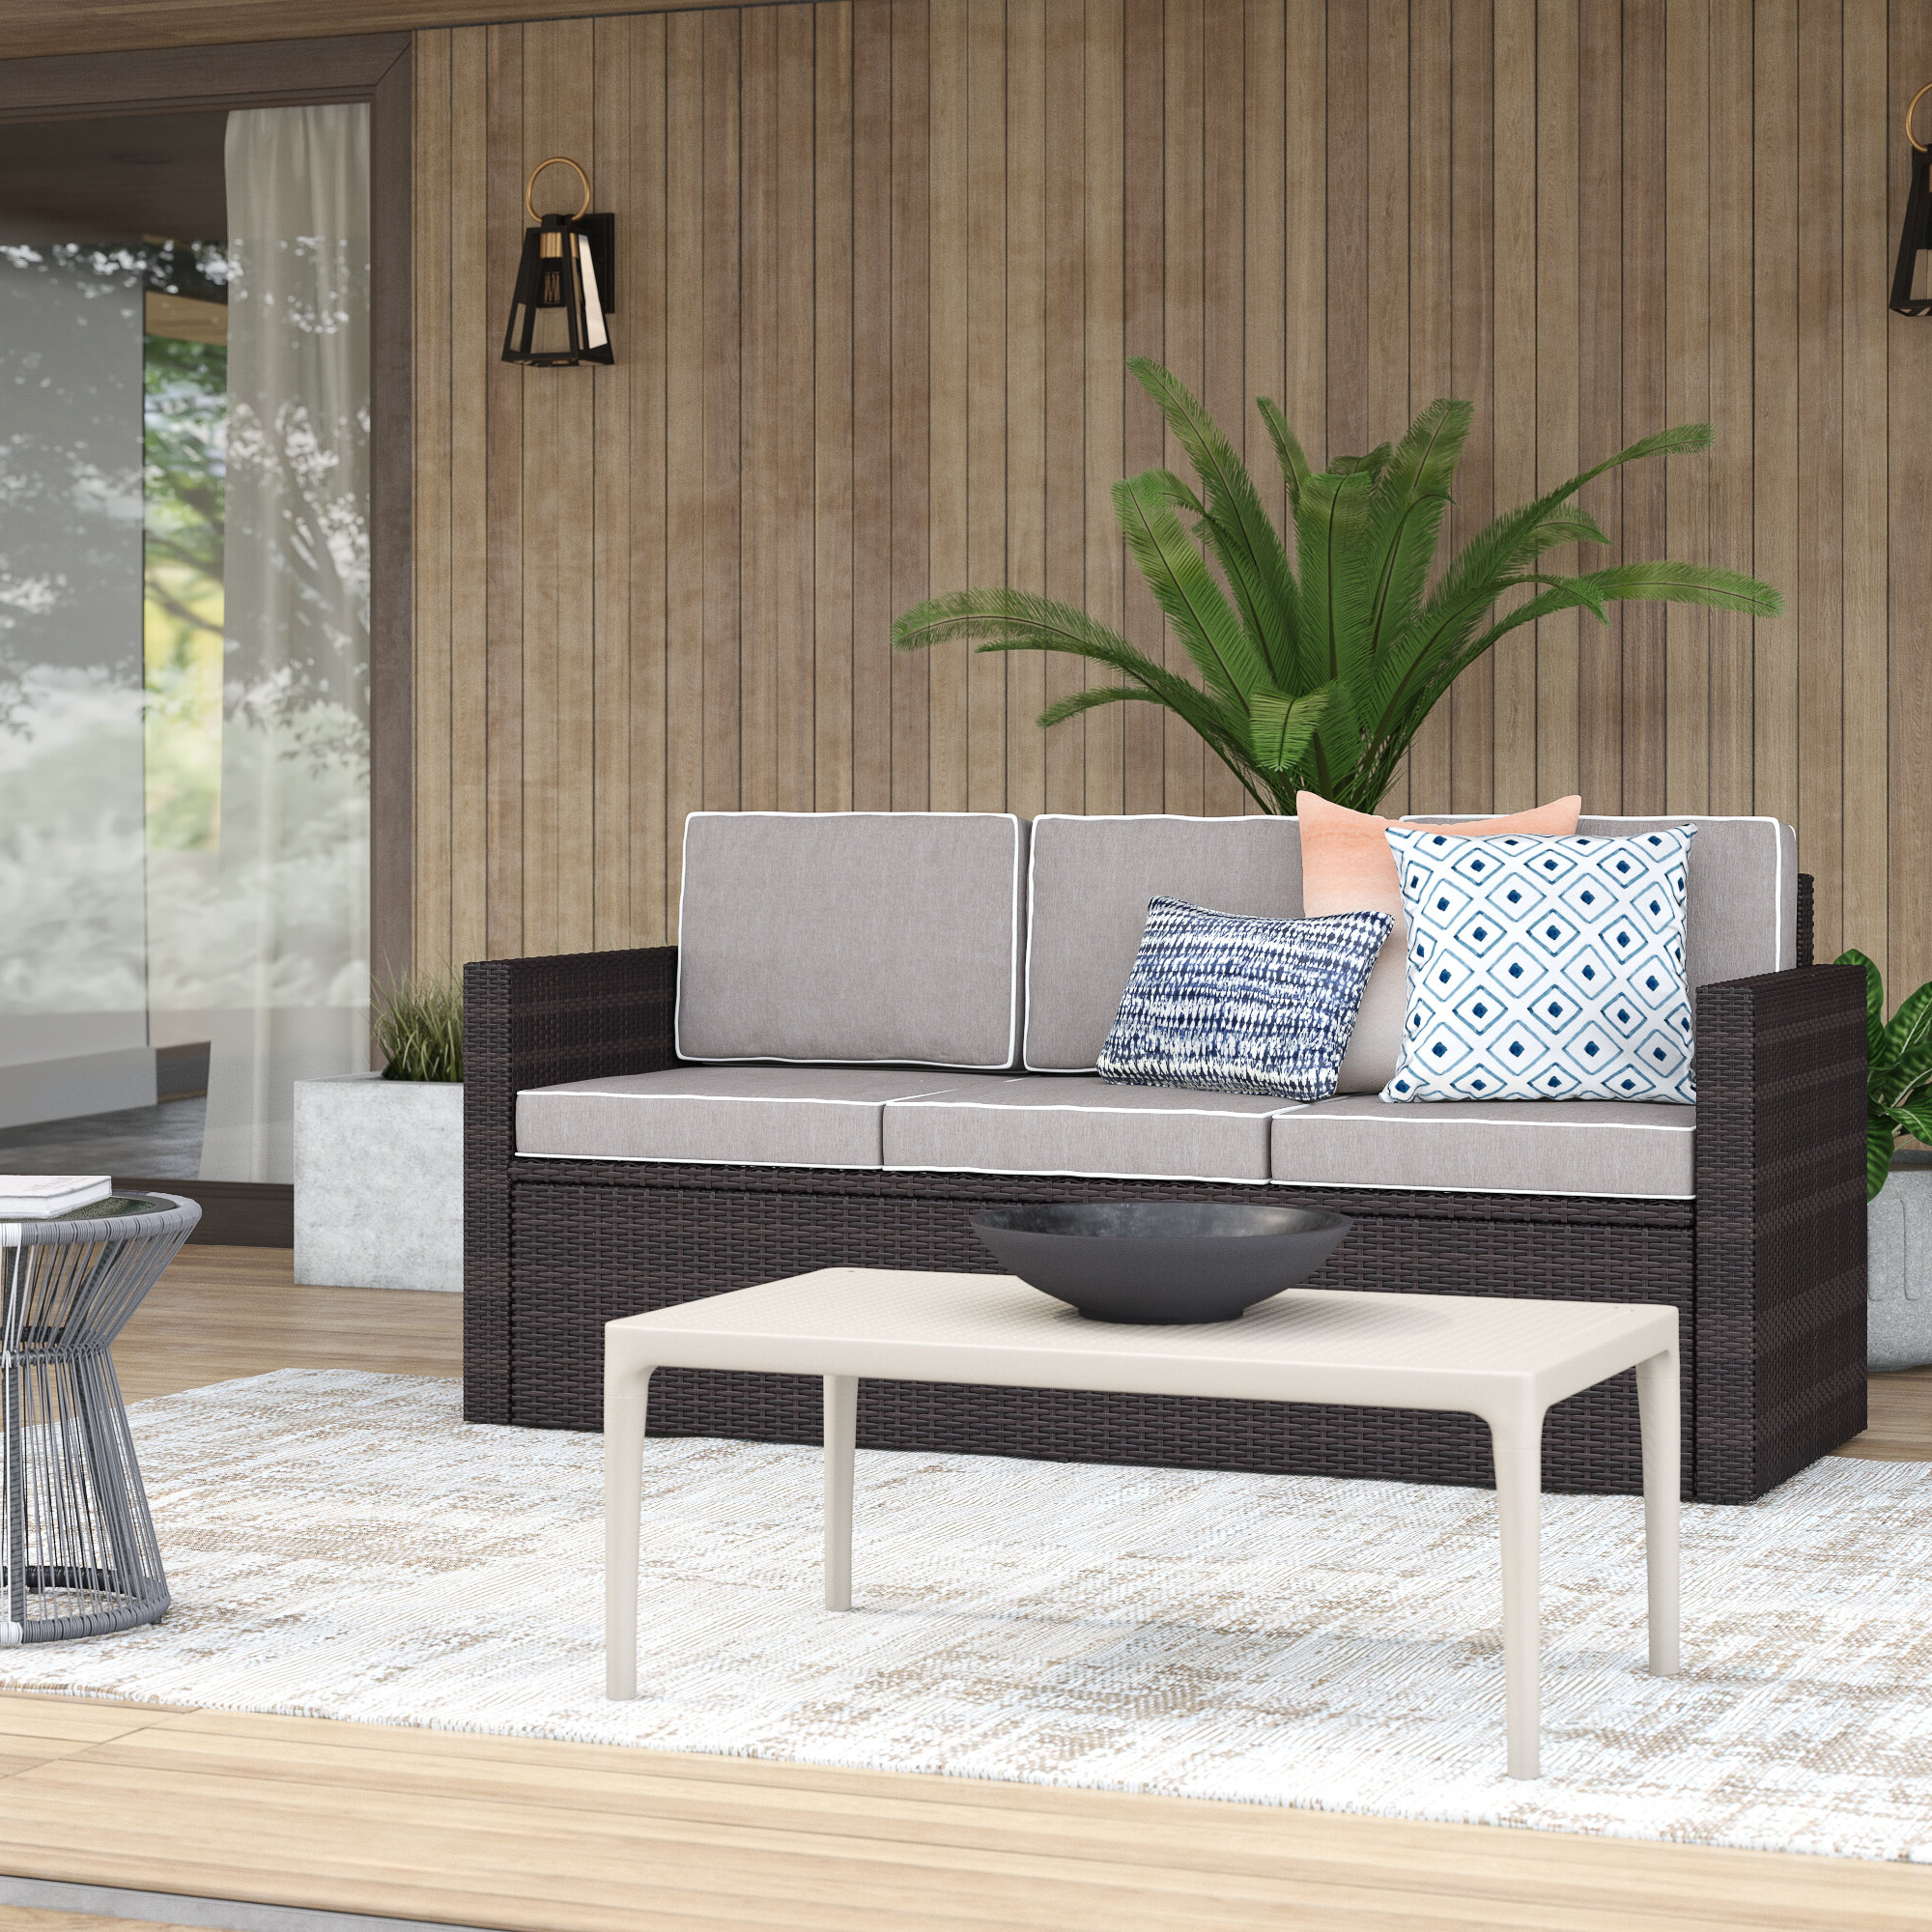 Recent Belton Patio Sofa With Cushions Throughout Silloth Patio Sofas With Cushions (View 10 of 20)